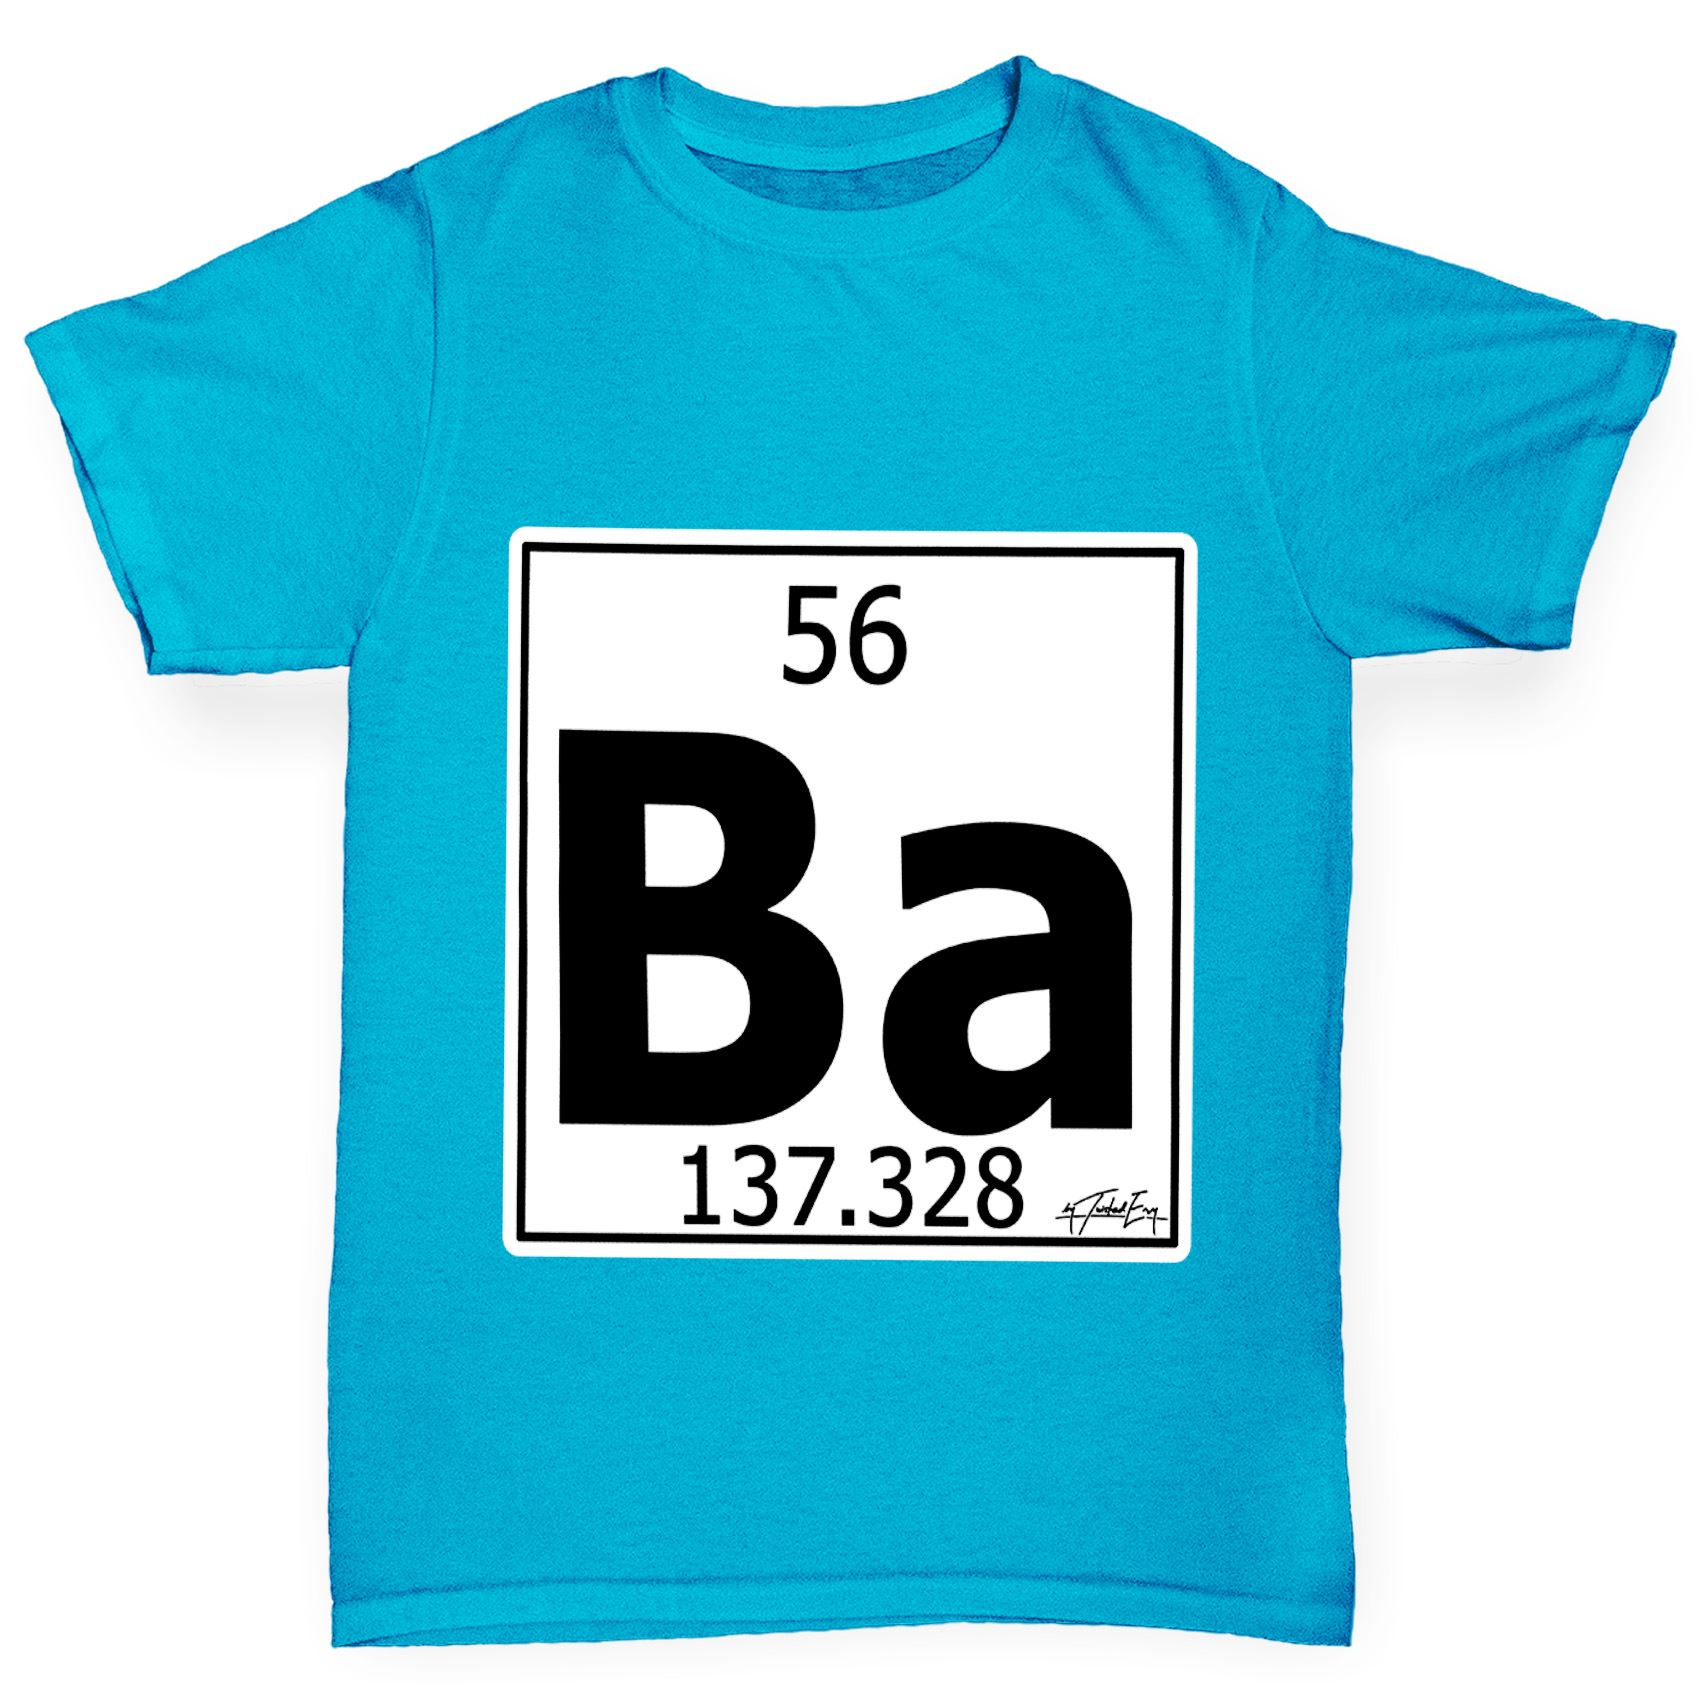 Twisted envy boys periodic table element ba barium t shirt ebay twisted envy boy 039 s periodic table element gamestrikefo Image collections